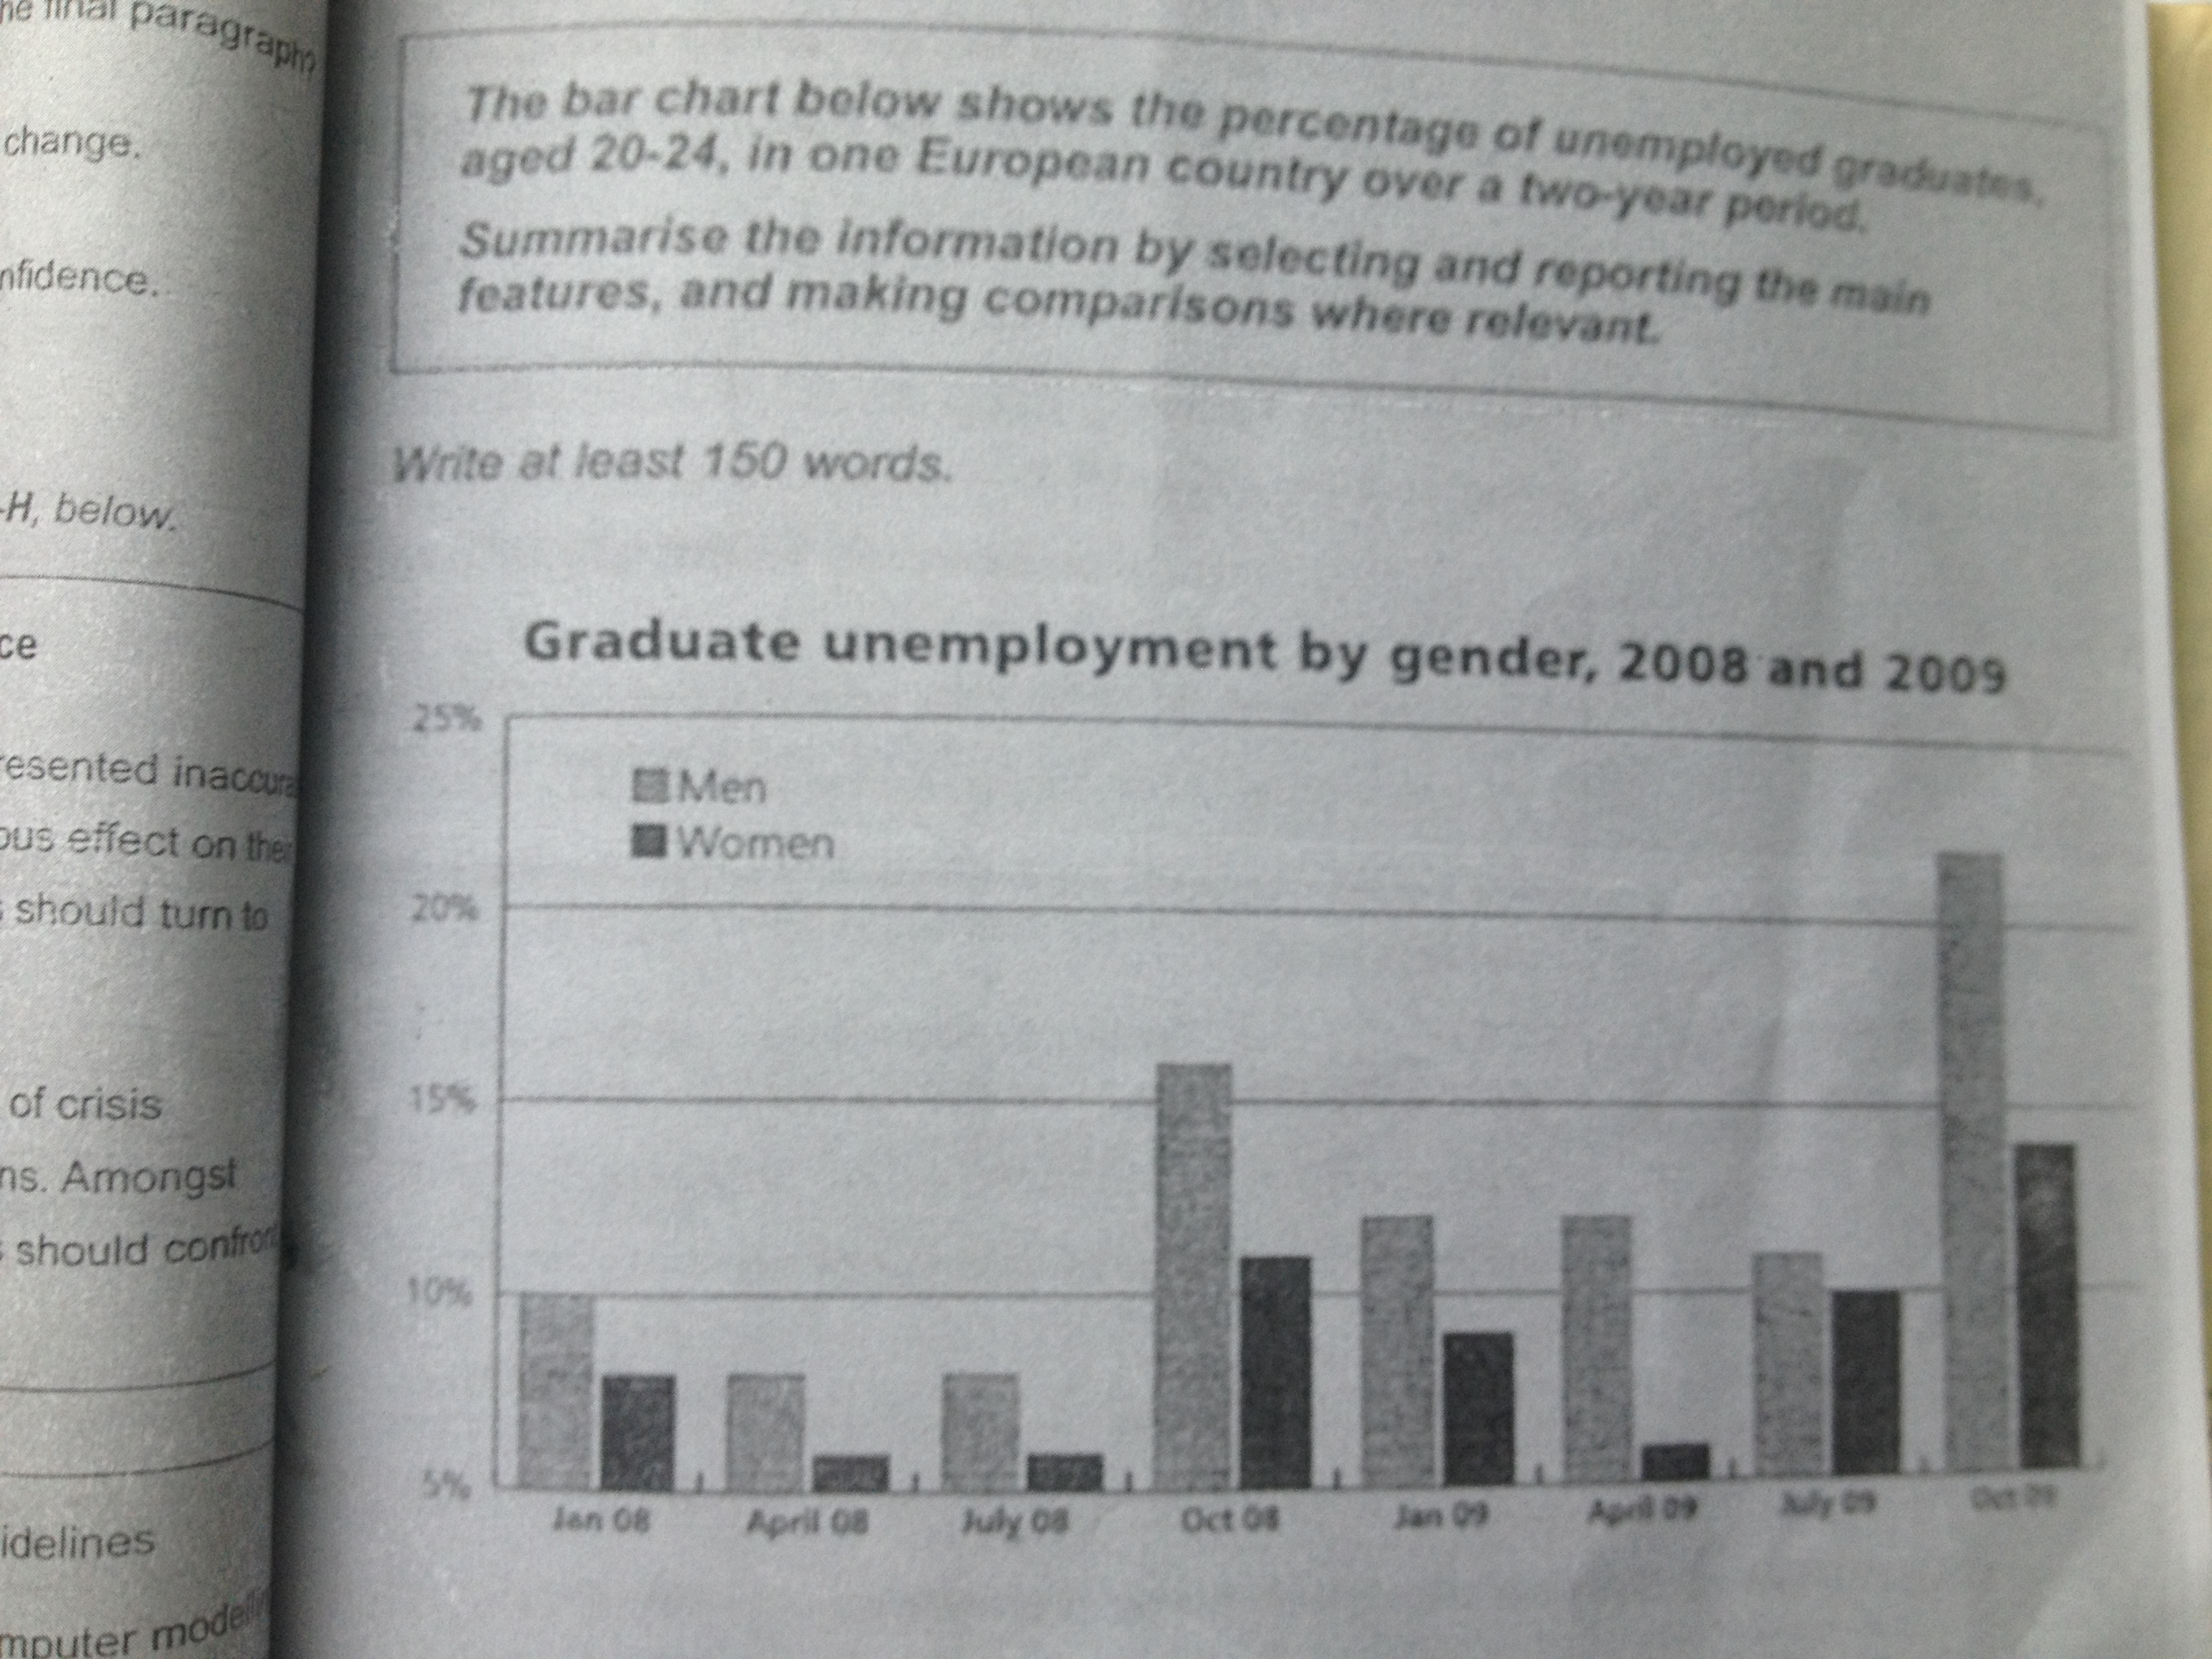 the bar chart below shows the percentage of unemployed graduates essay topics the bar chart below shows the percentage of unemployed graduates aged 20 24 in one european country over a two year period